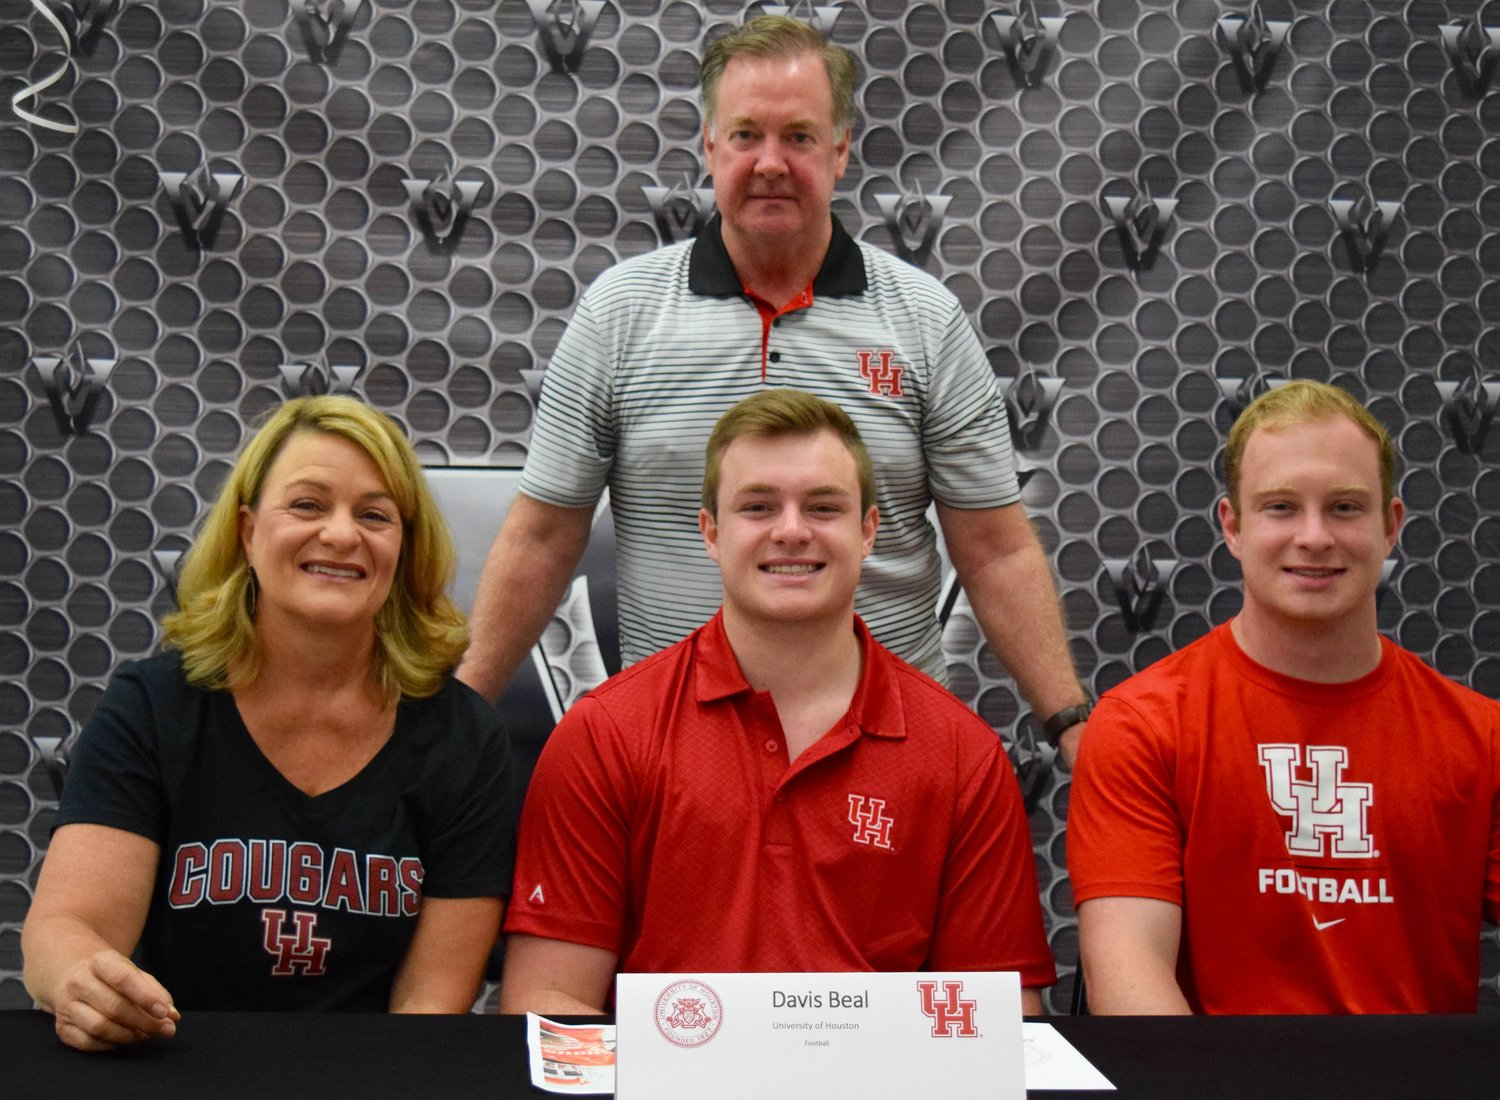 Davis Beal signed to play football at Houston at a ceremony Tuesday morning at Vandegrift High School.